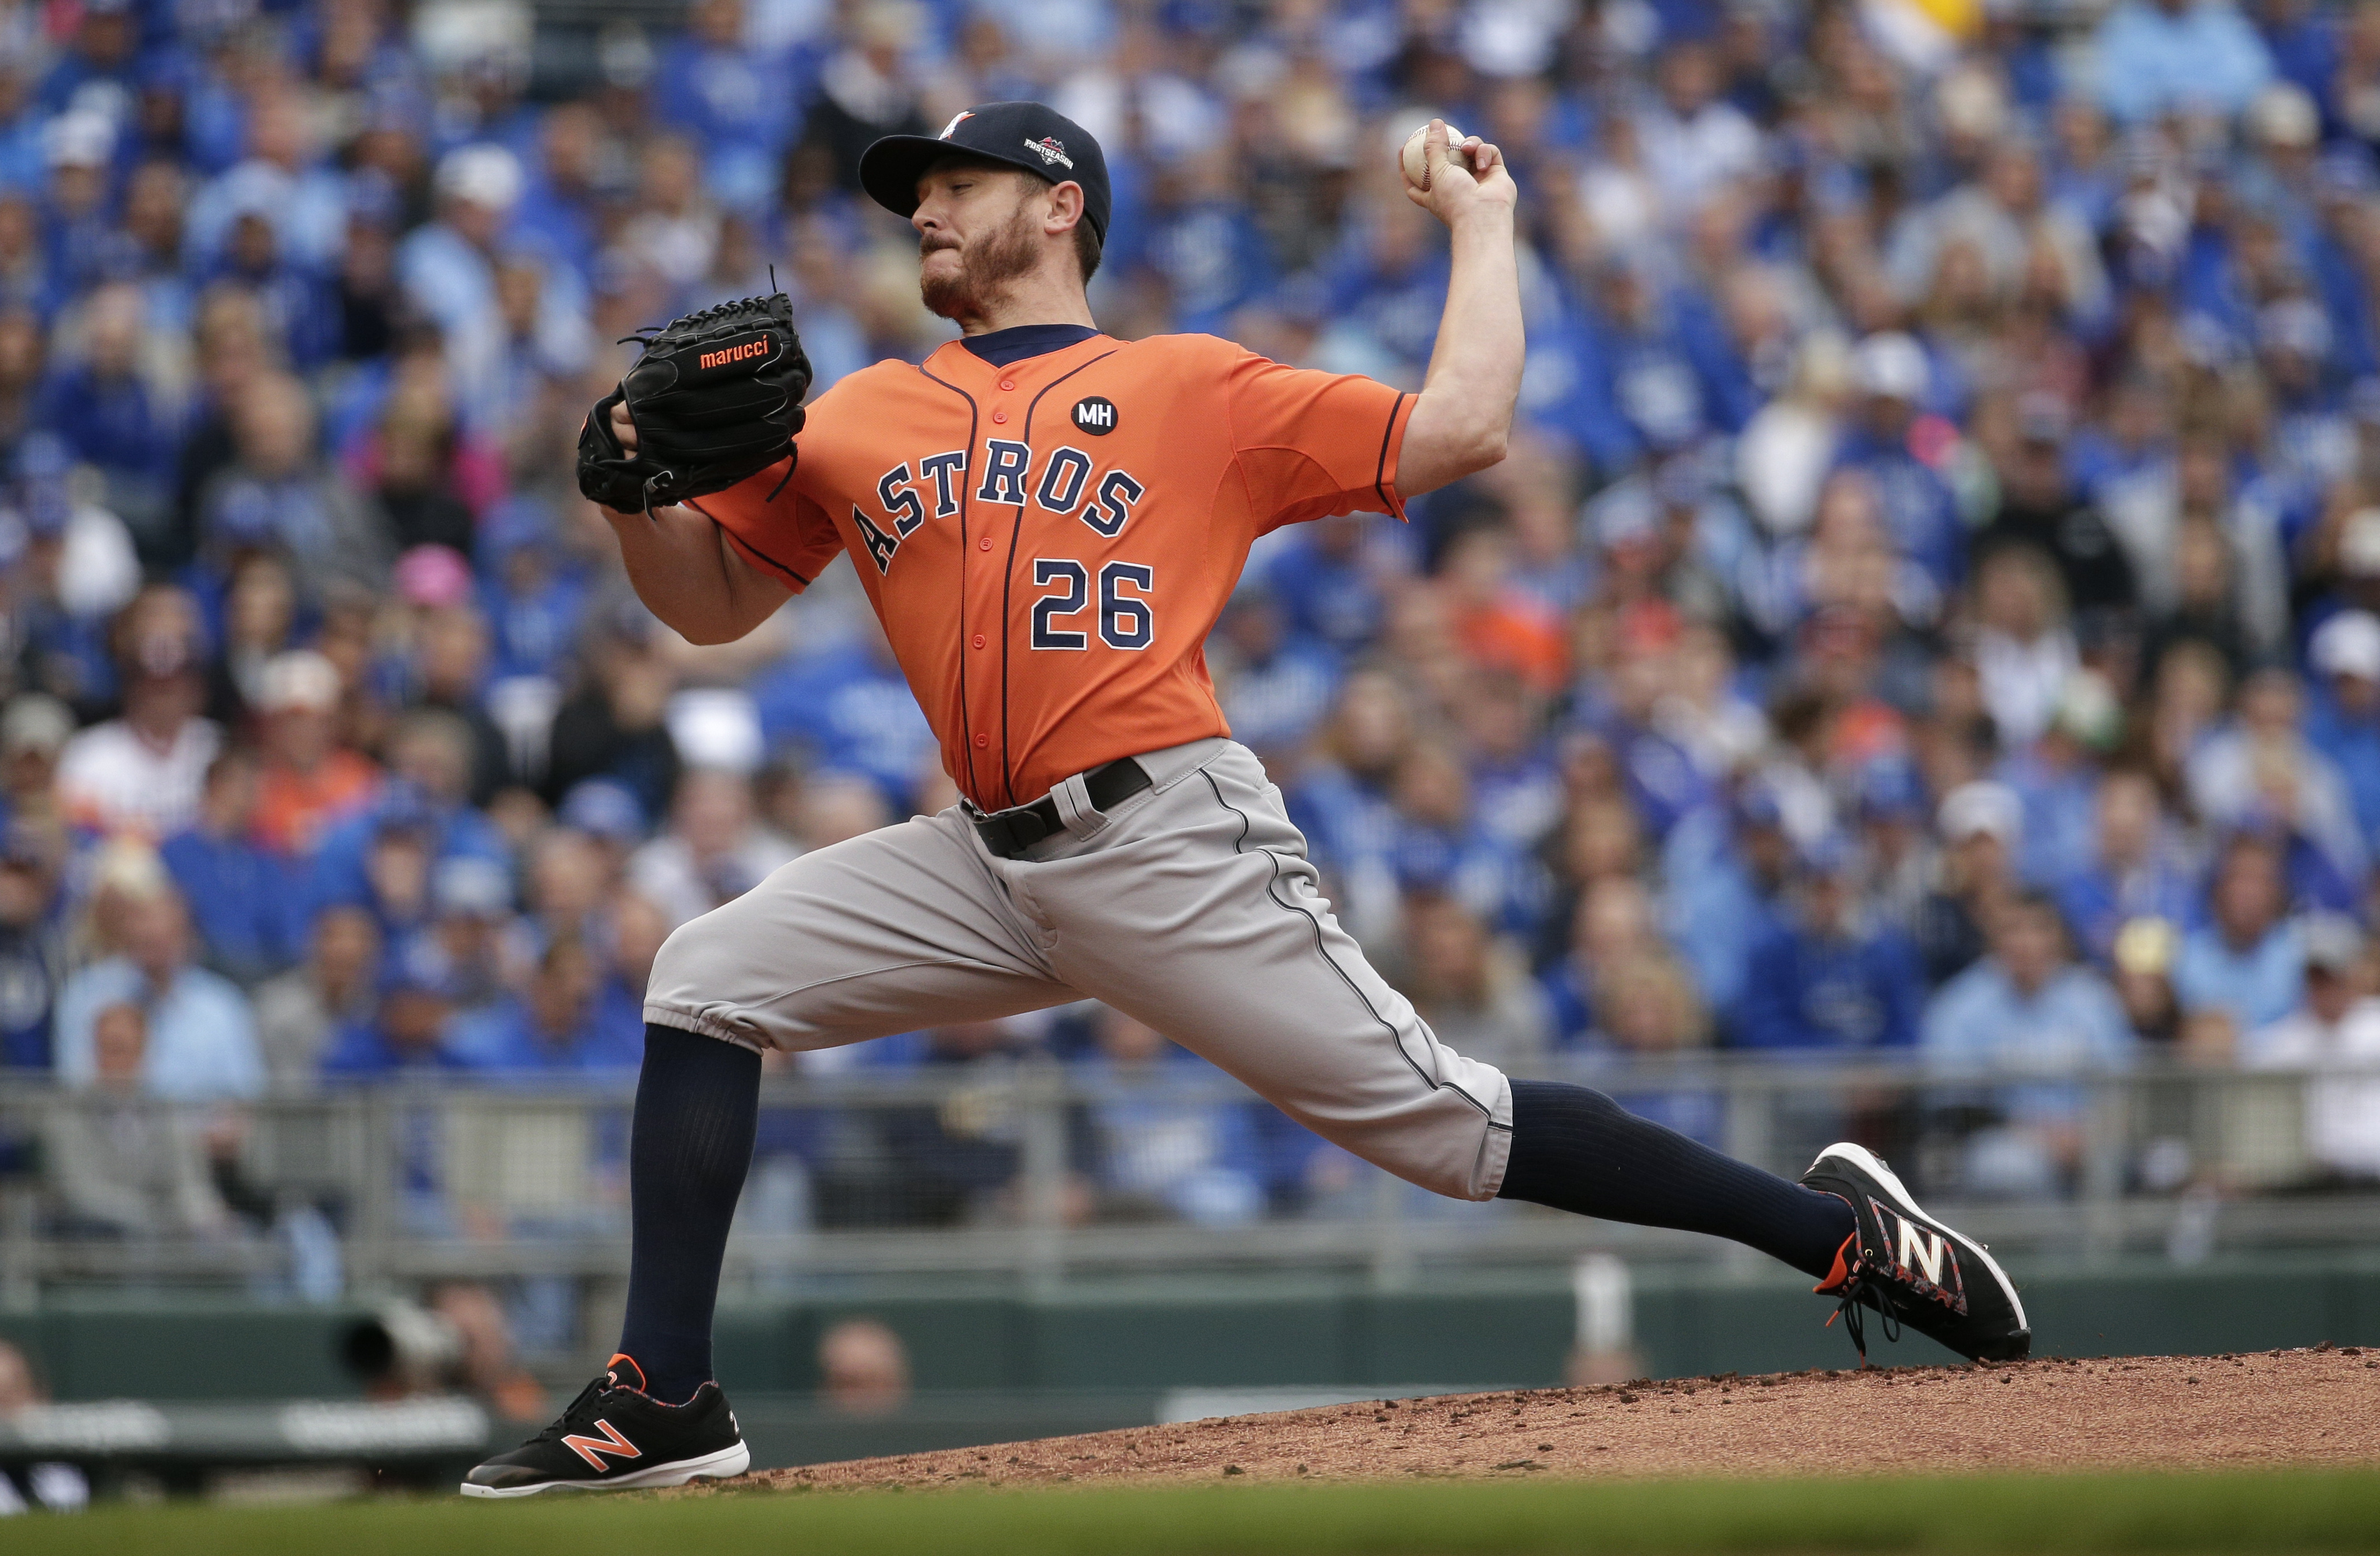 Houston Astros starting pitcher Scott Kazmir throws during the first inning of Game 2 in baseball's American League Division Series against the Kansas City Royals, Friday, Oct. 9, 2015, in Kansas City, Mo. (AP Photo/Charlie Riedel)